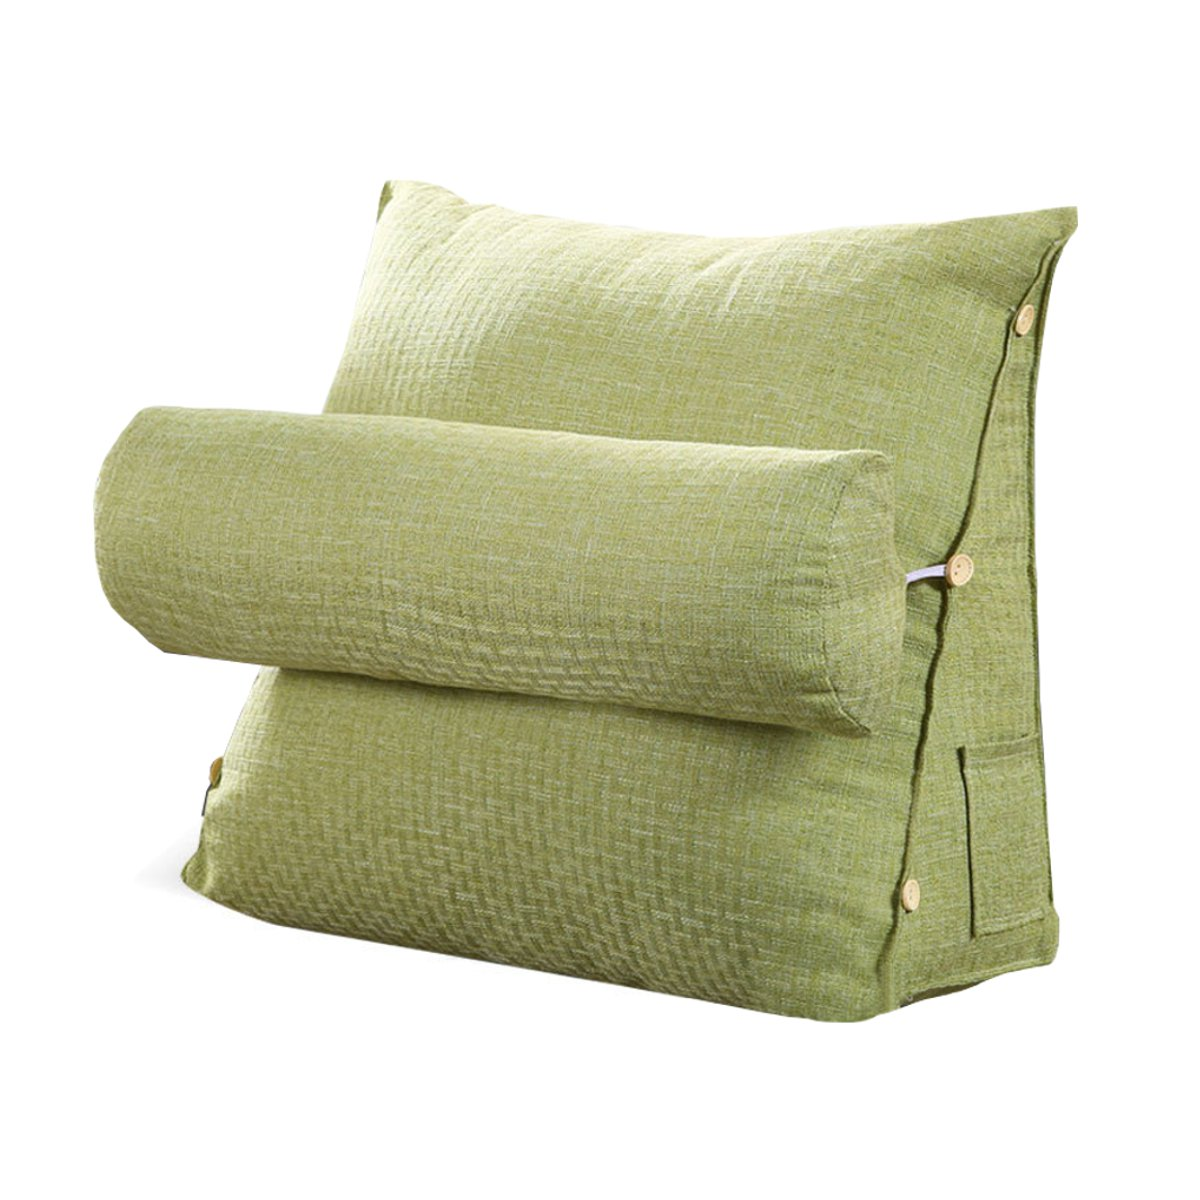 Triangle Wedge Pillow Cotton And Linen Reading Backrest Cushion Bed Backrest Ebay